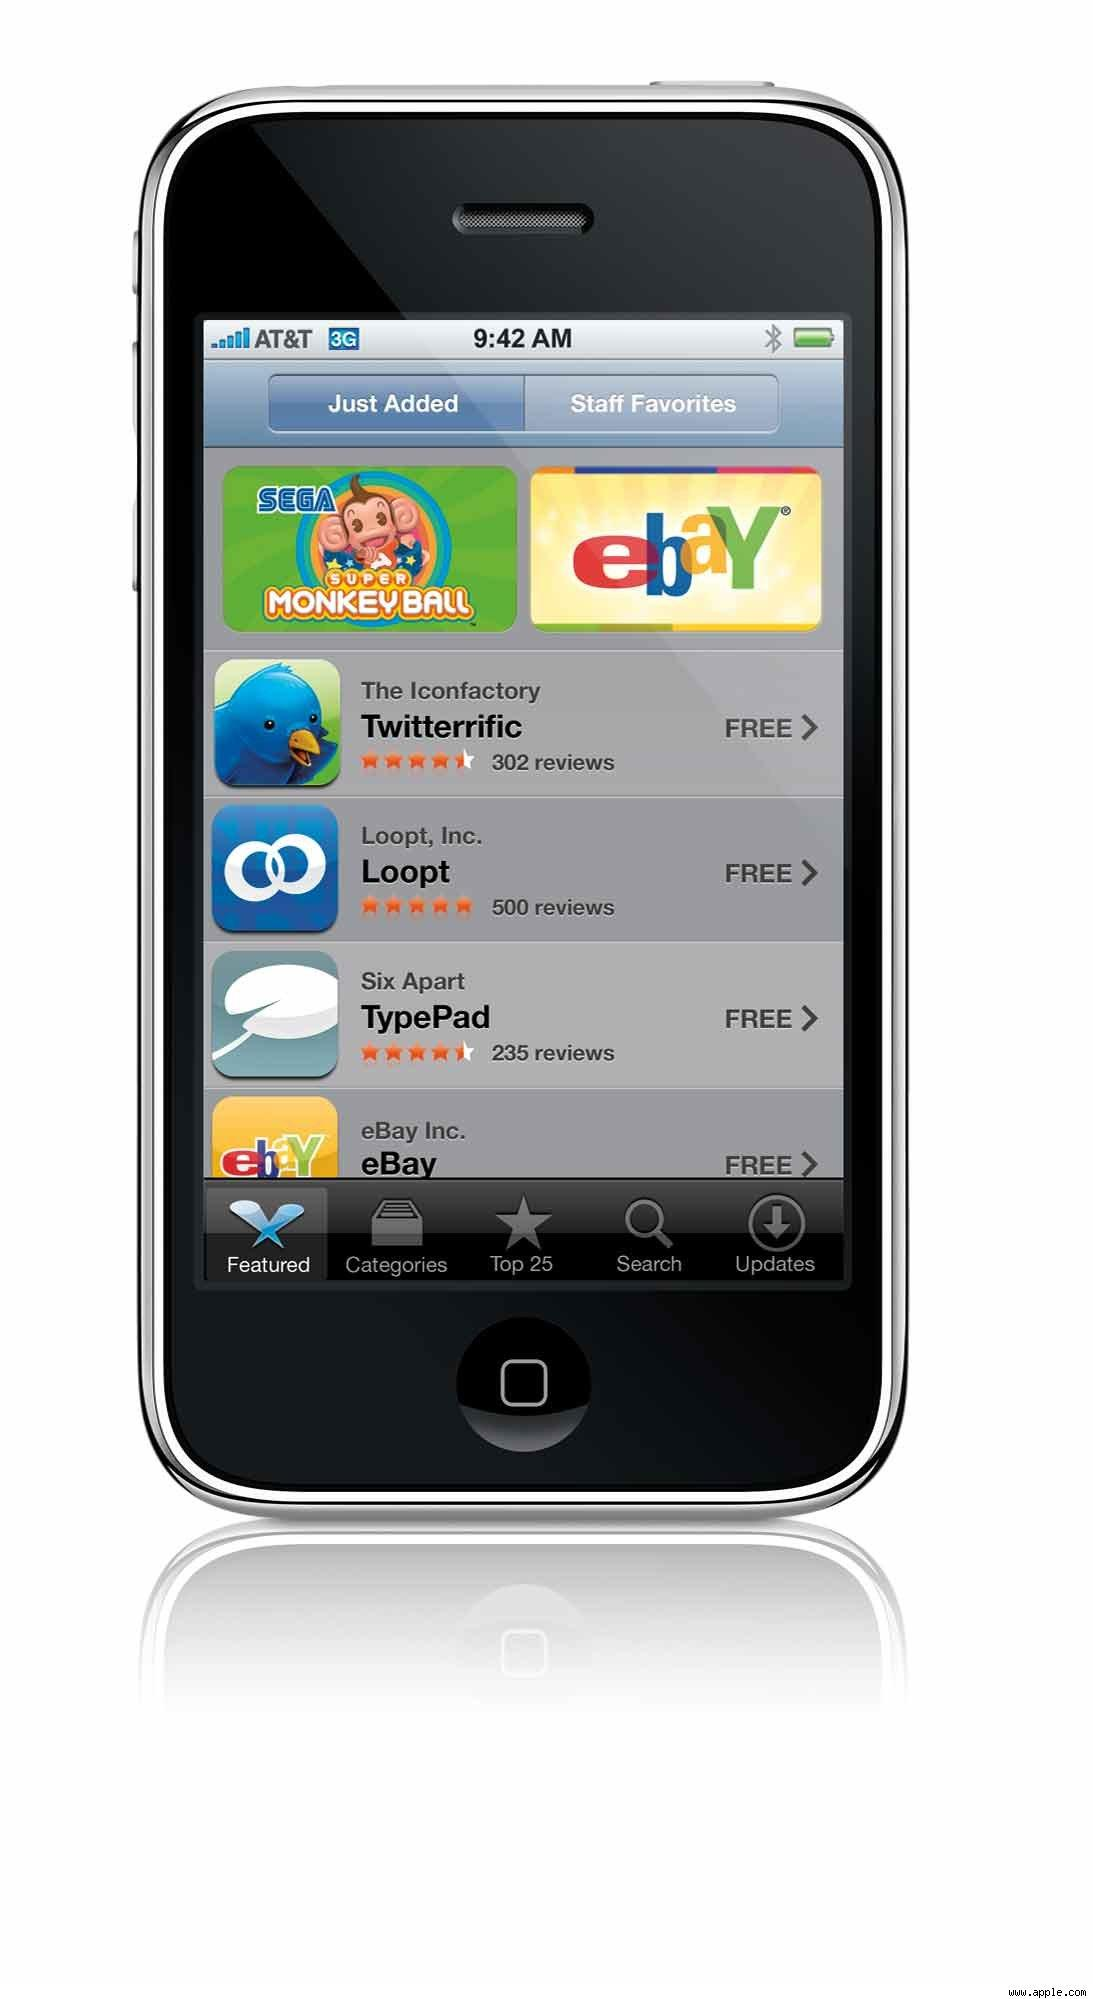 PromoAppCode hopes to be one-stop shop for iPhone promo codes